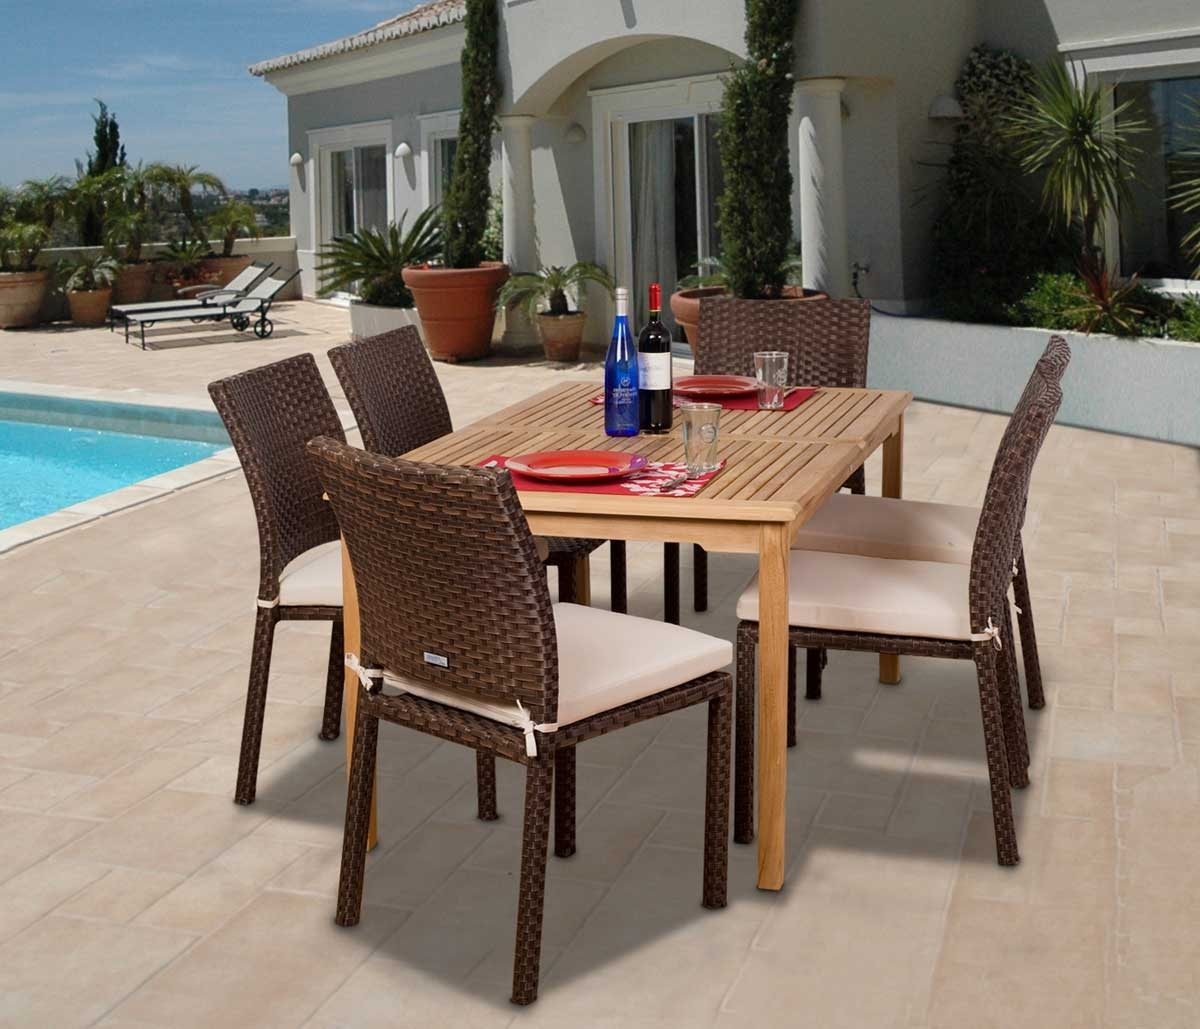 Affordable Outdoor Furniture 10 Best Dining Sets Under 1500 In Modern Teak Outdoor Furniture How To Care Modern Teak Outdoor Furniture